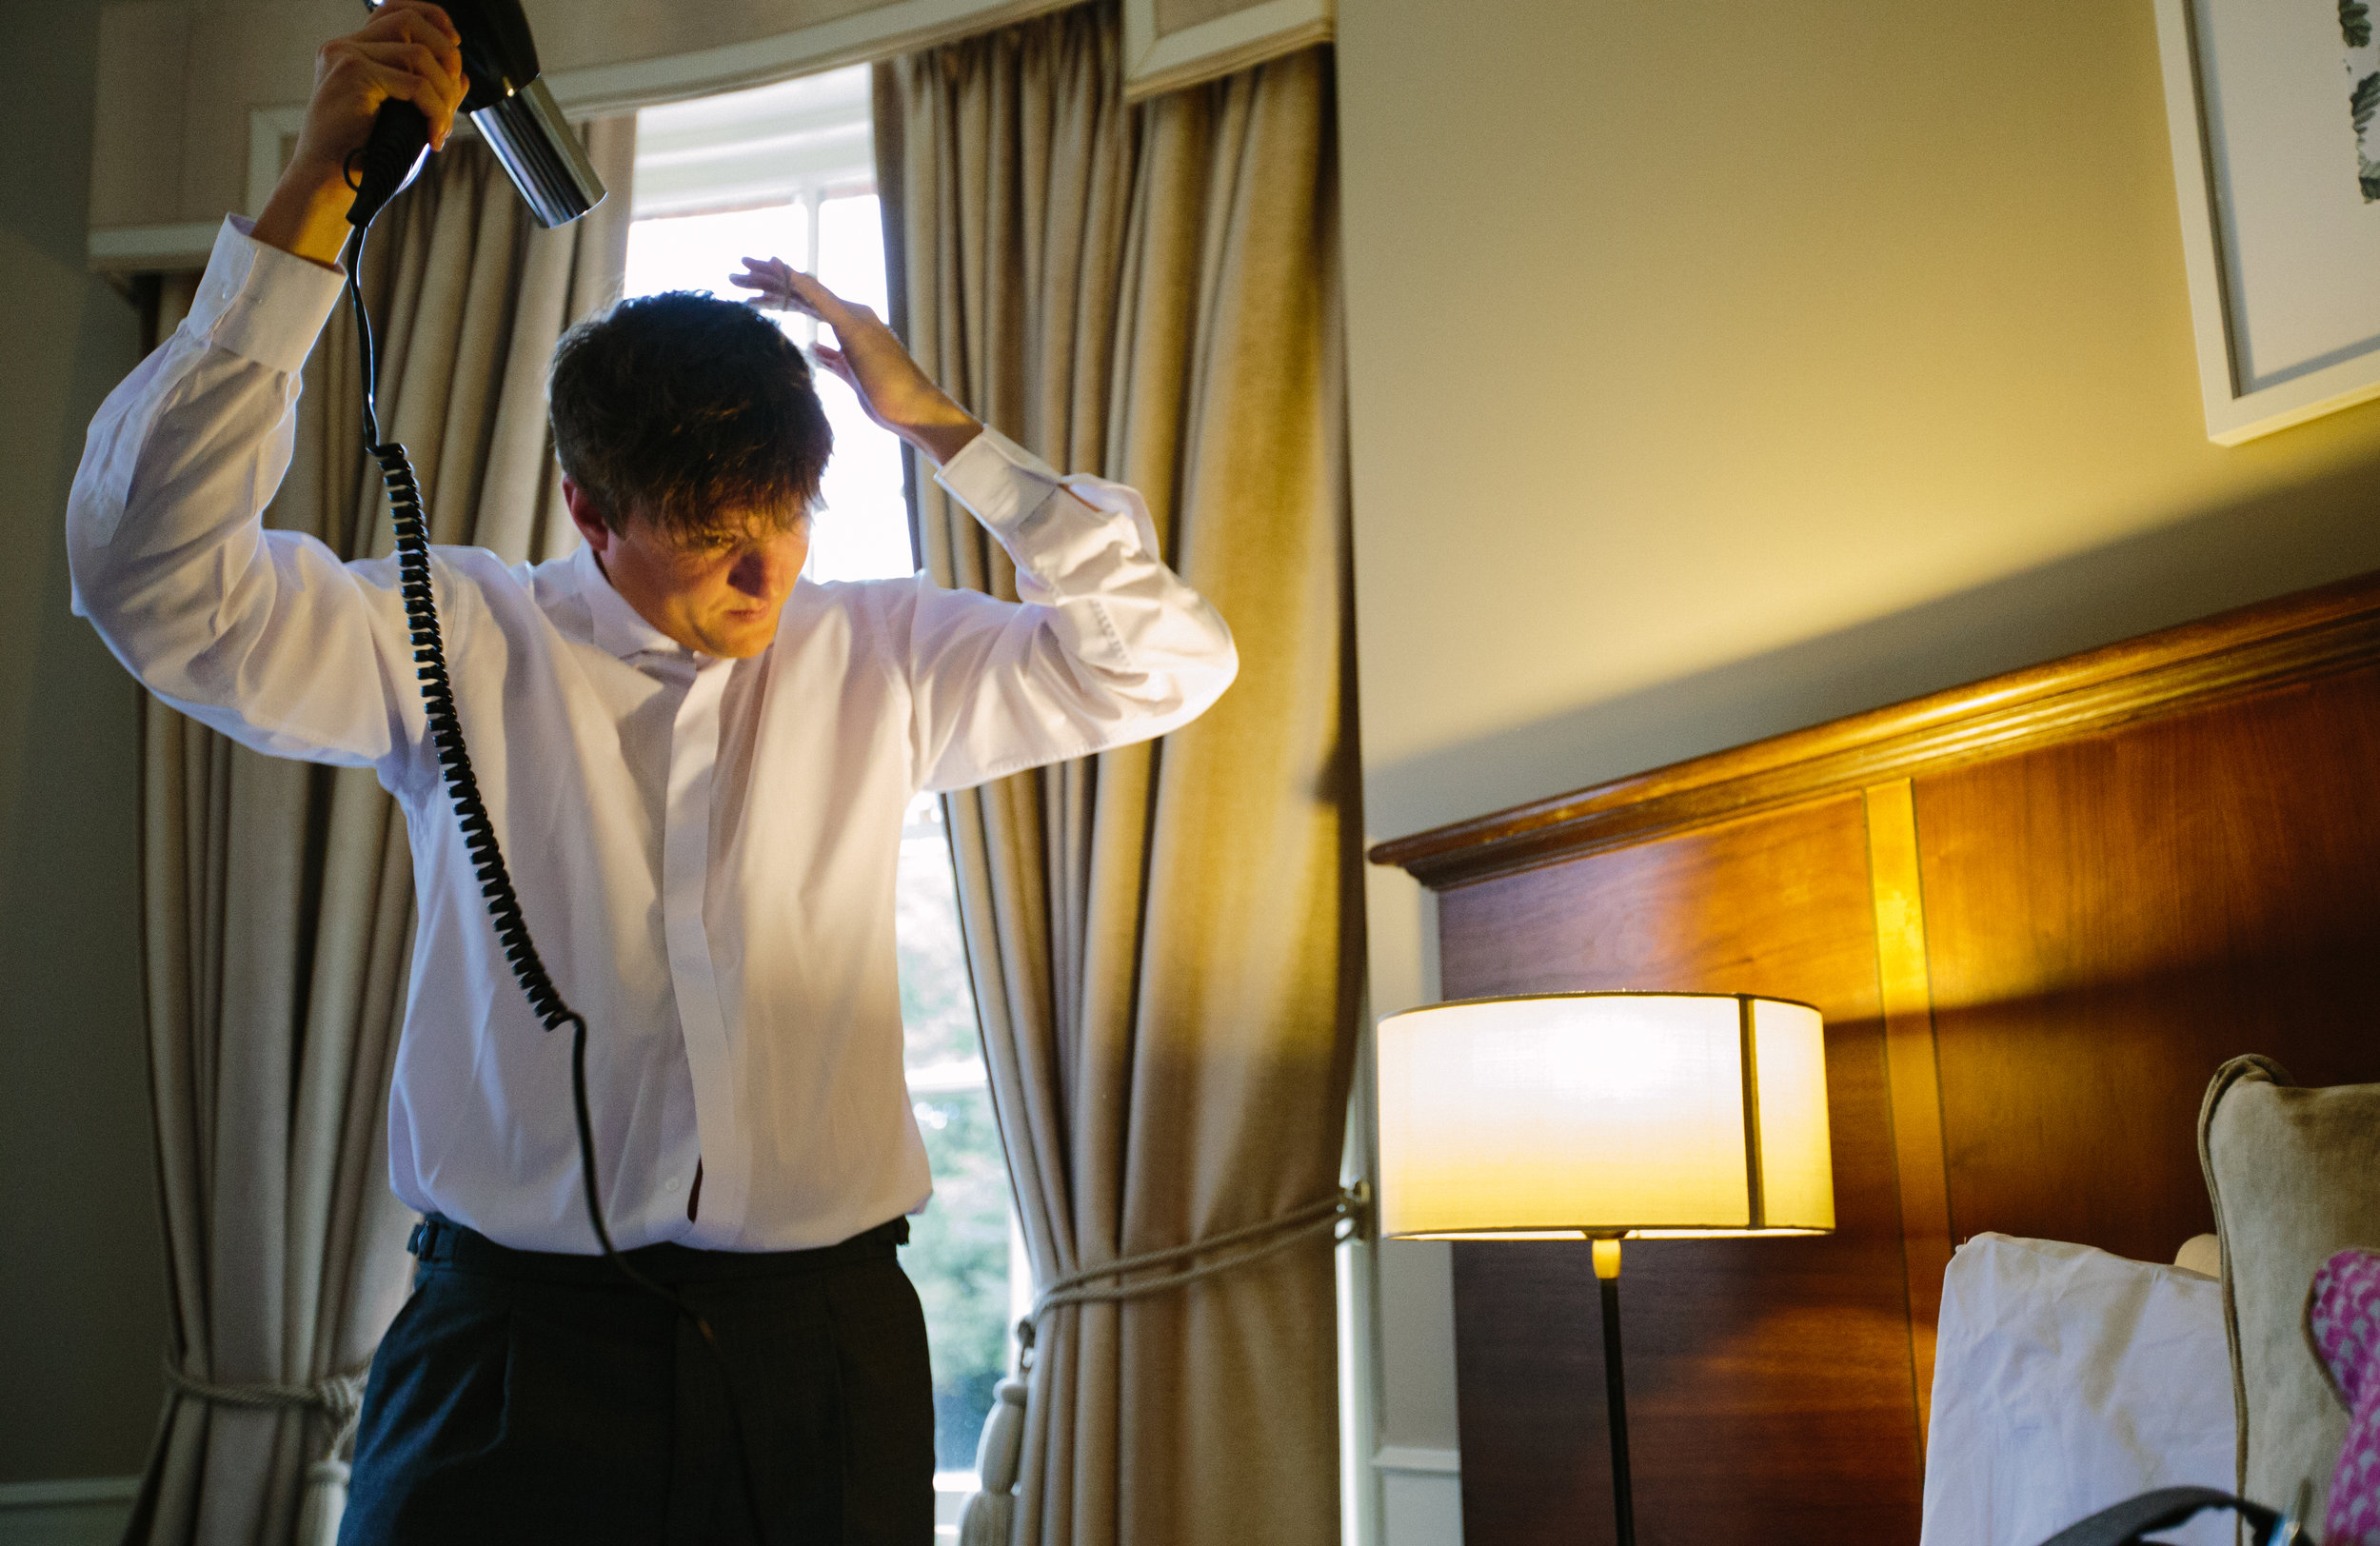 surrey-ascot-royal-berkshire-hotel-autumn-wedding-groom-1